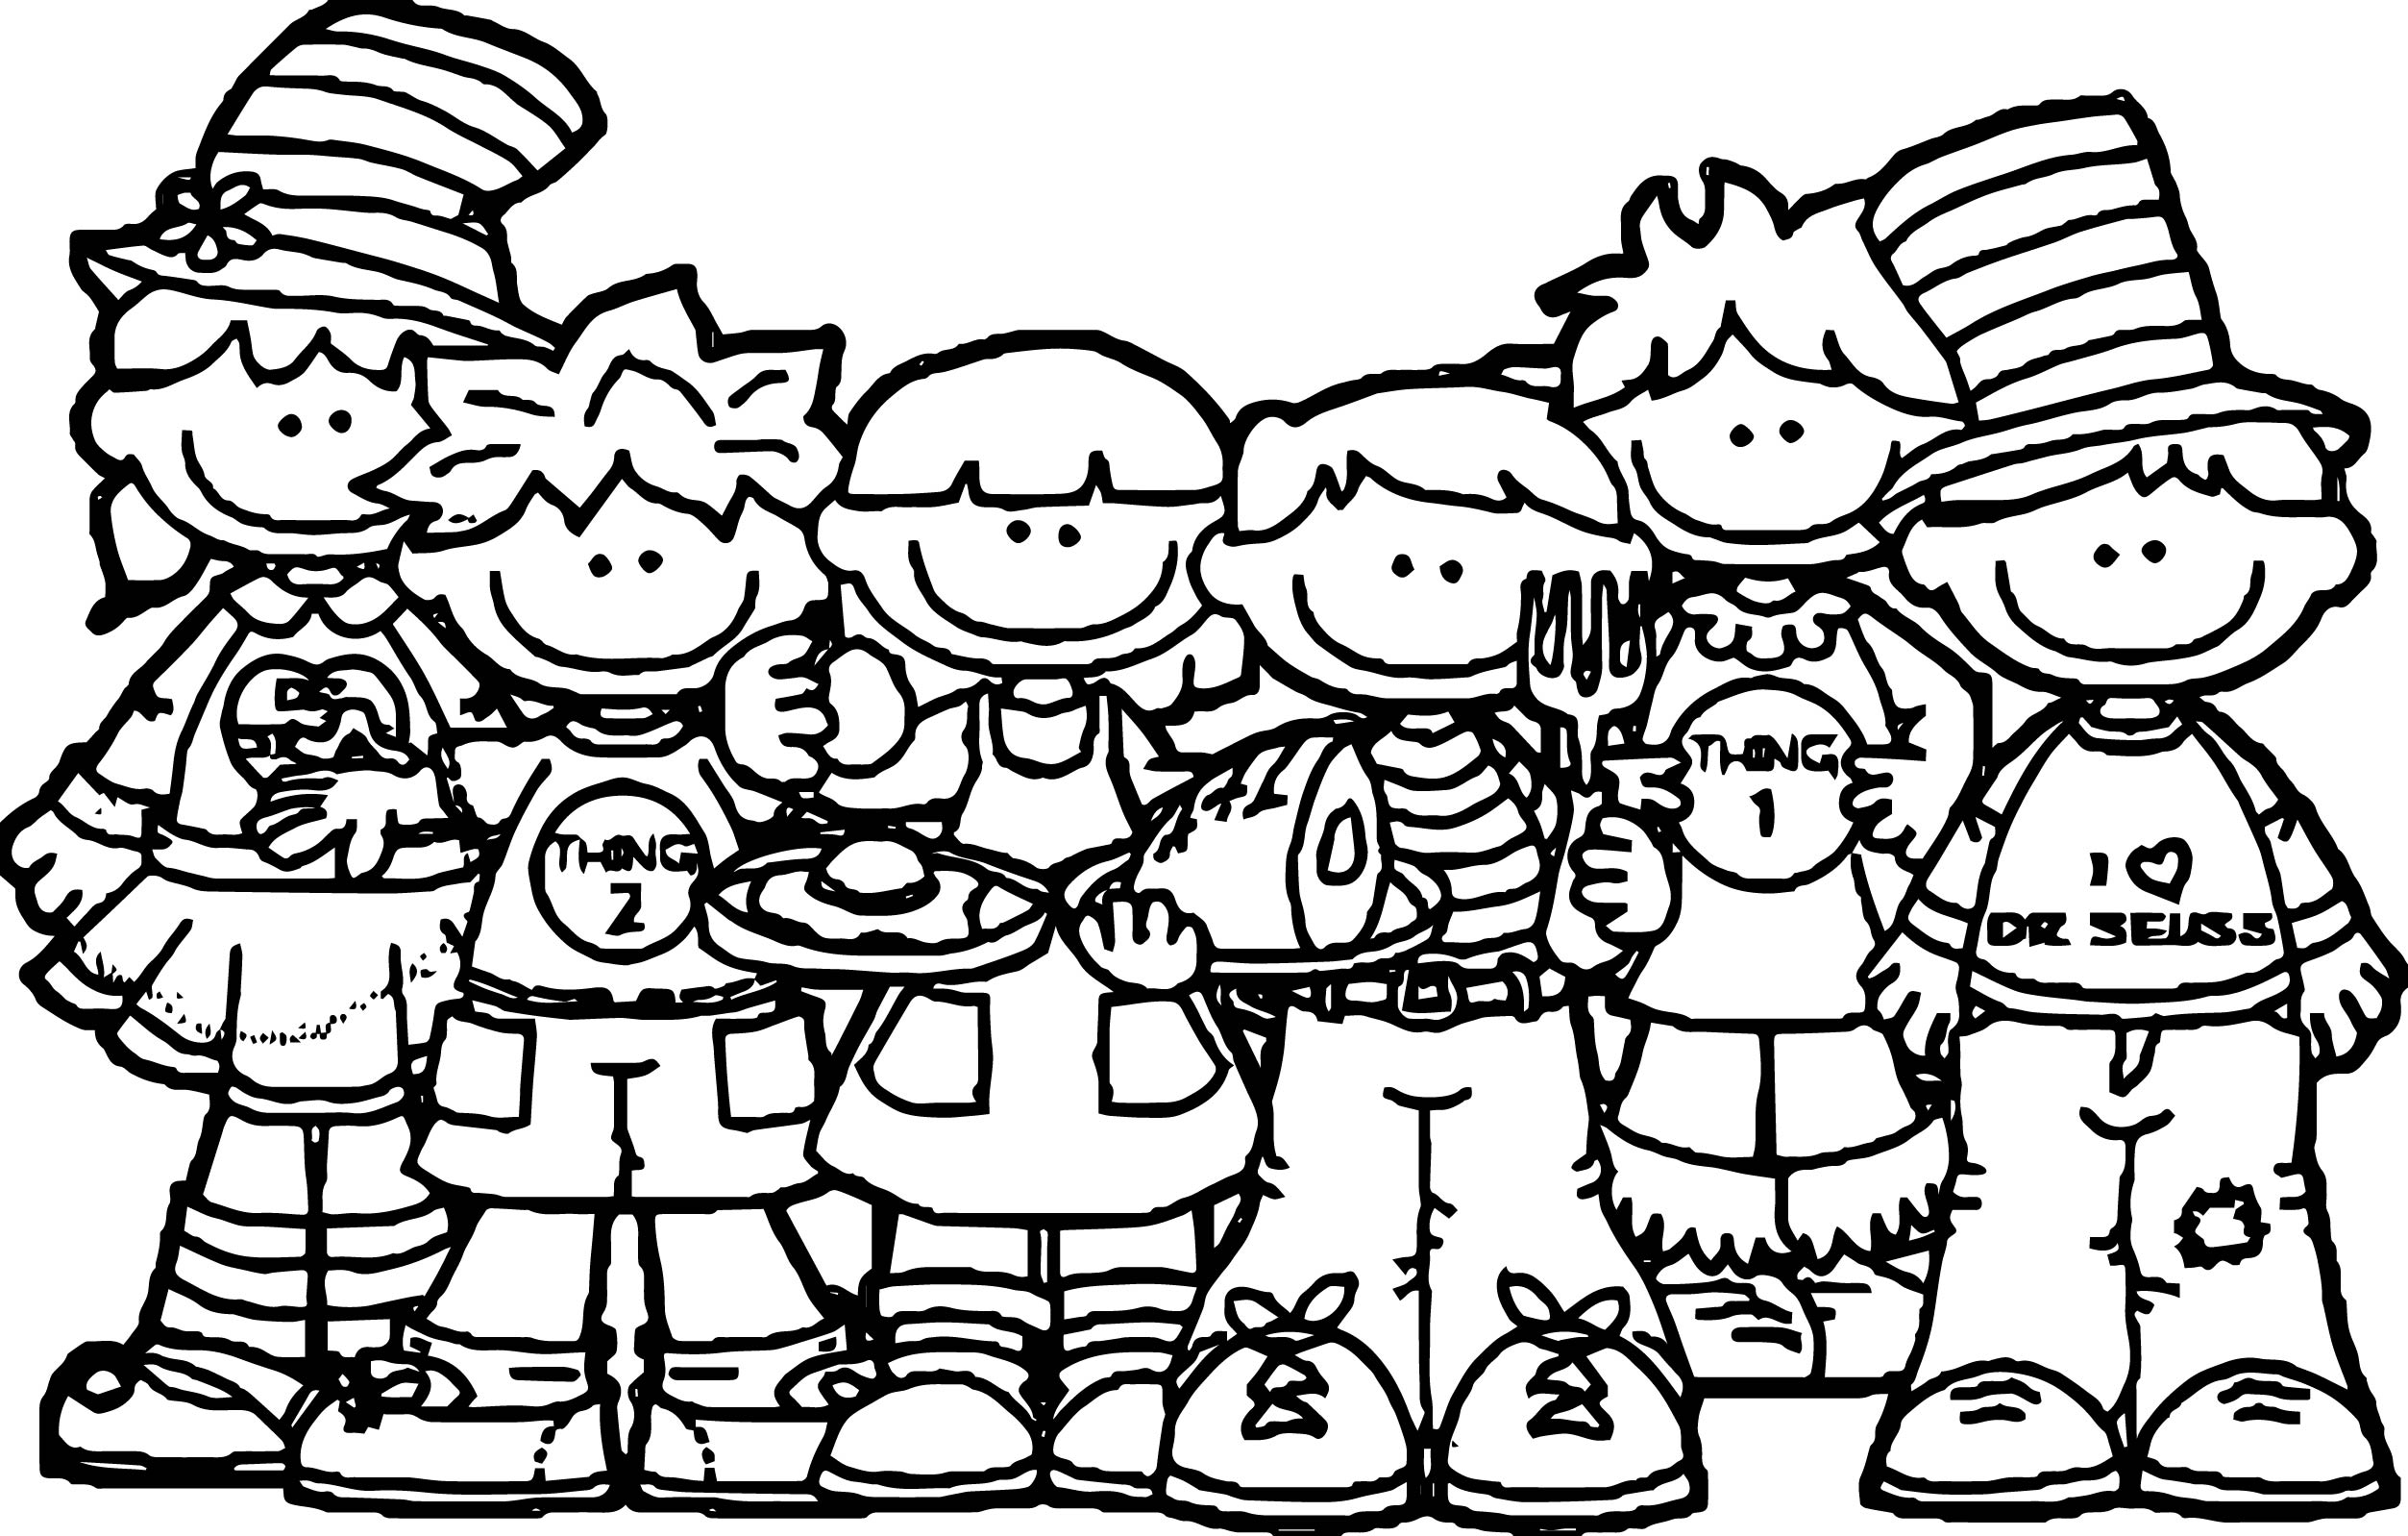 coloring pages 3rd grade third grade coloring pages at getcoloringscom free 3rd grade coloring pages